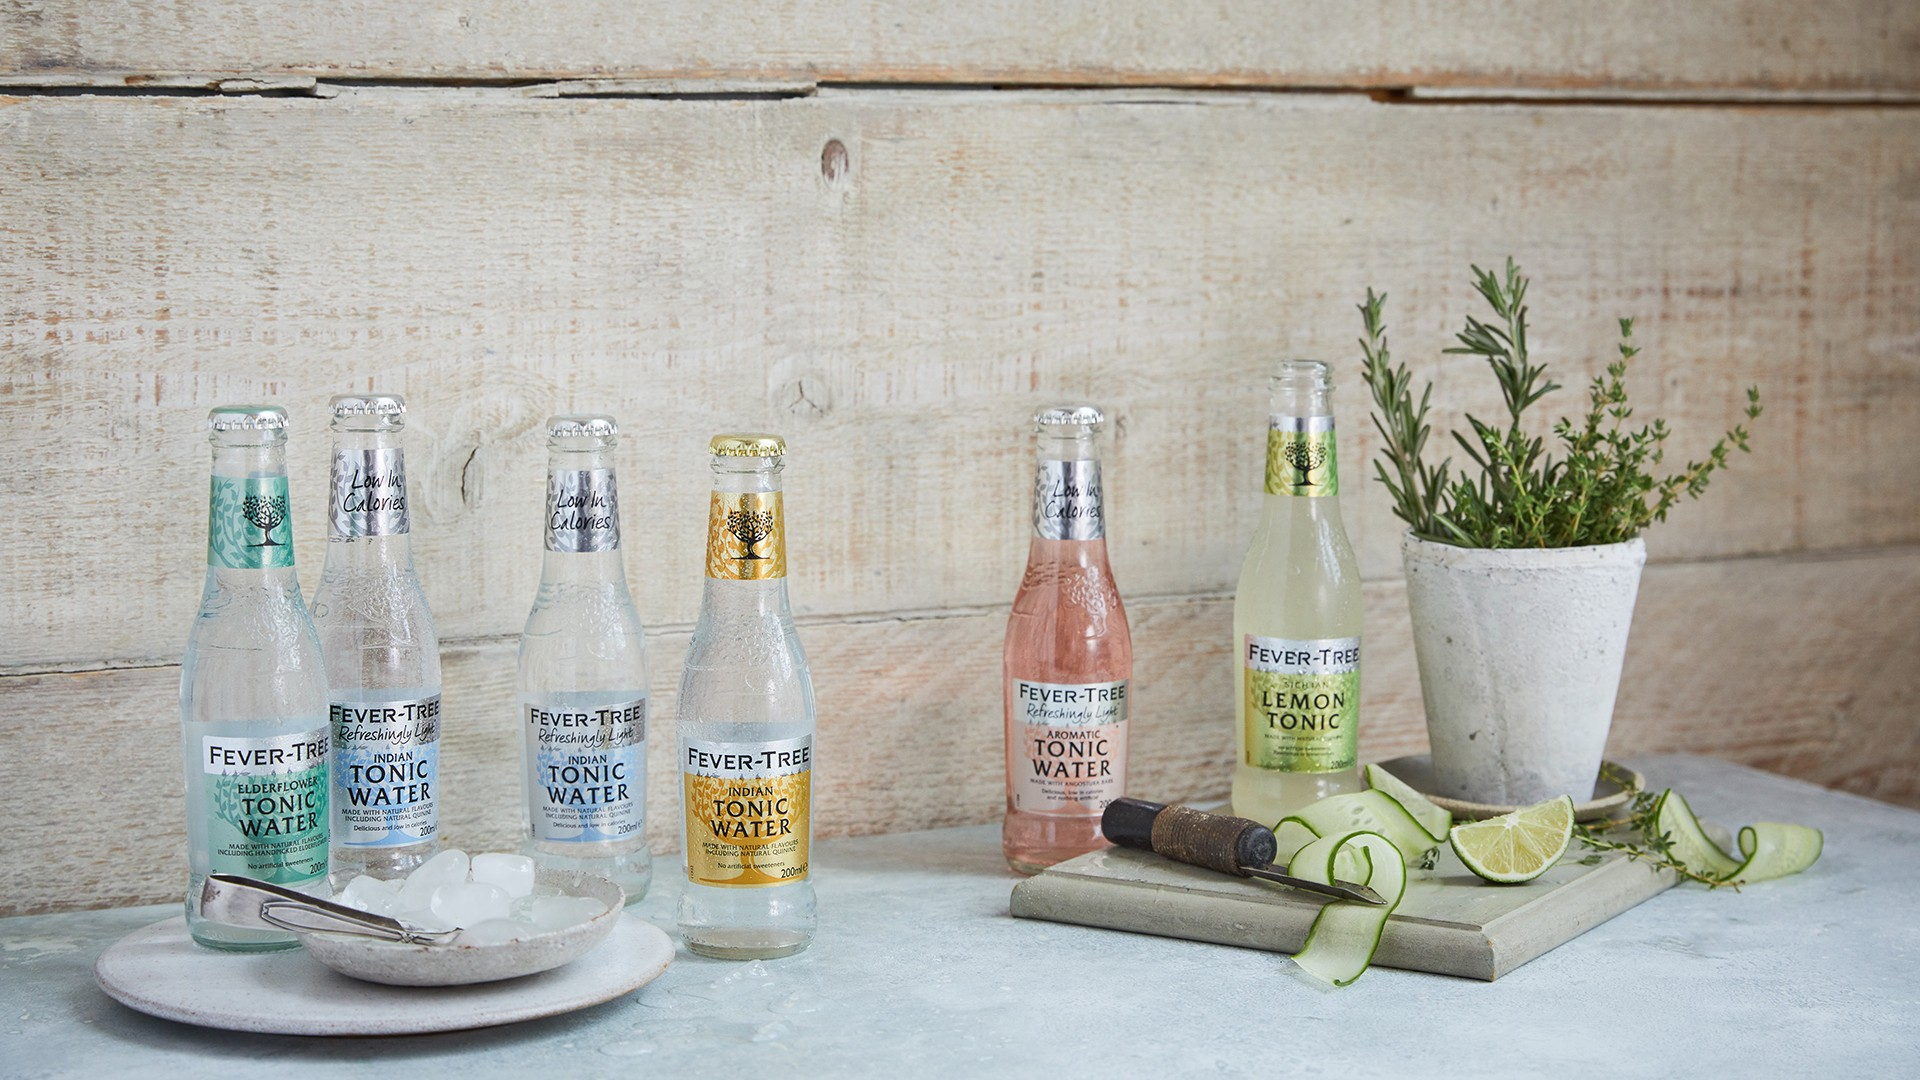 The full Fever-Tree line-up